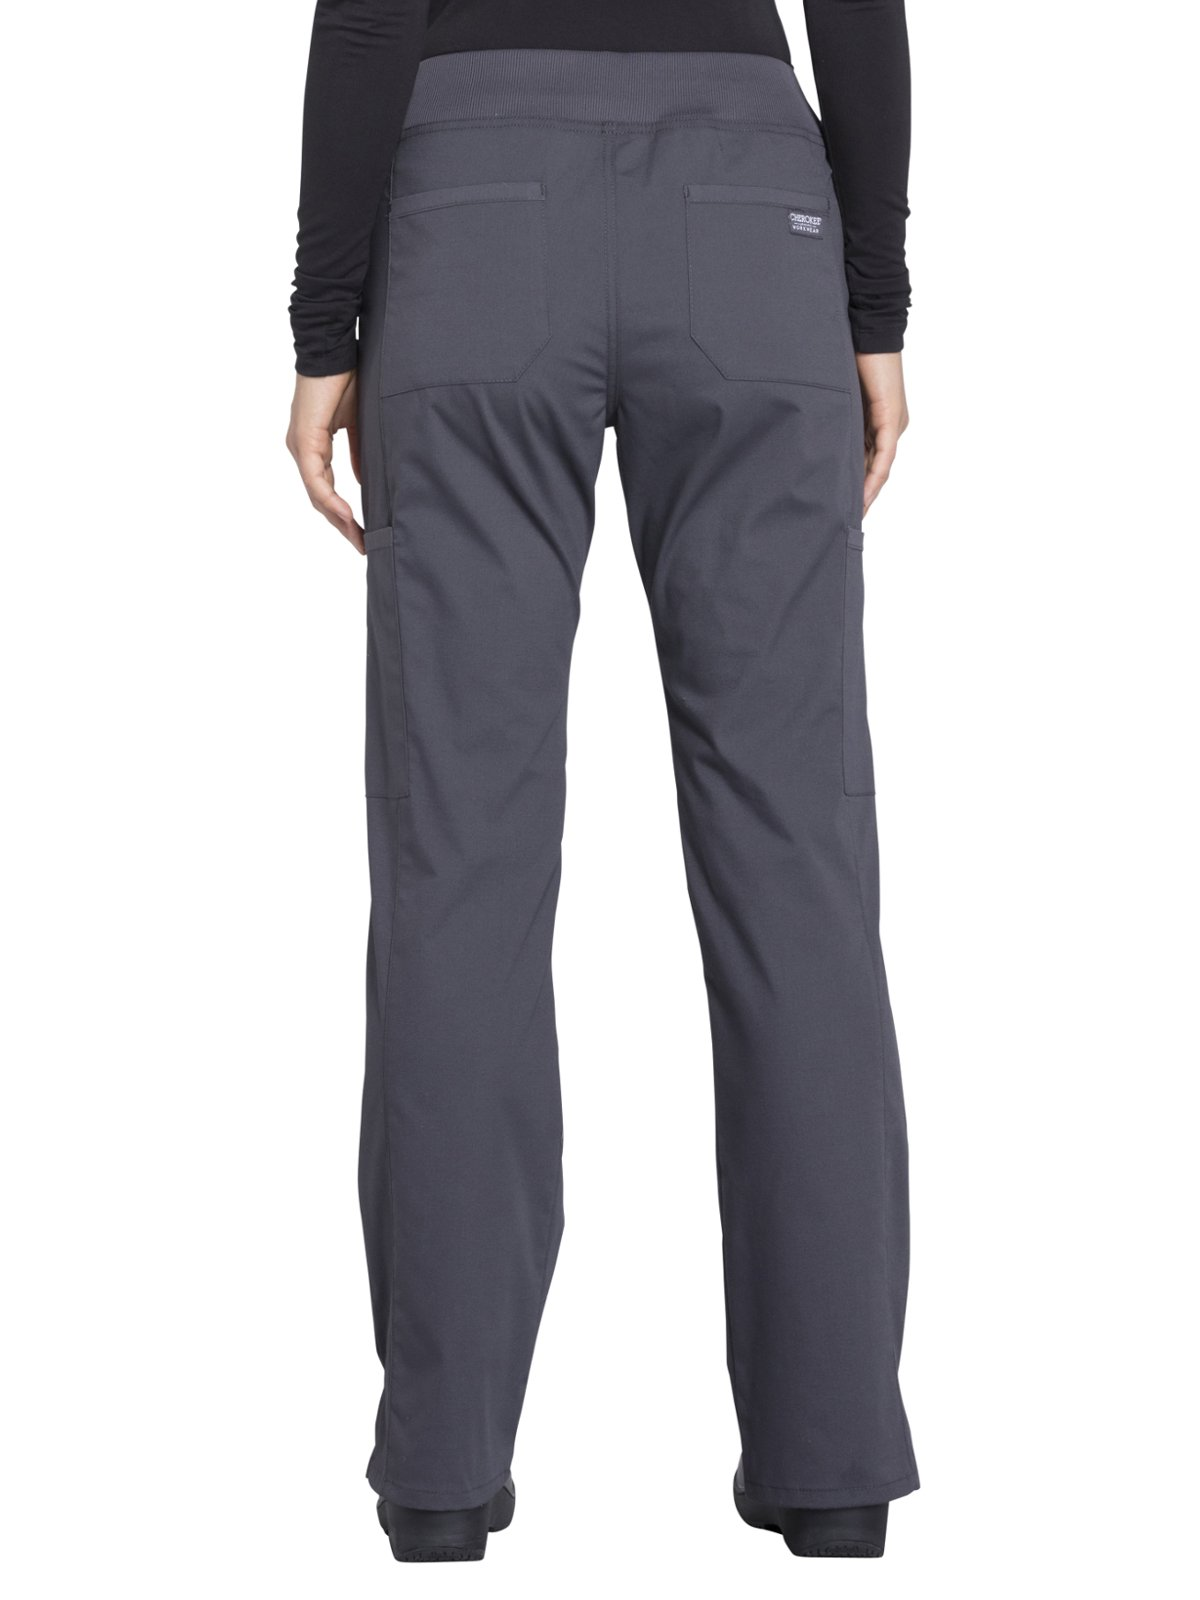 Cherokee Workwear Professionals WW170 Cargo Pant- Pewter- Medium Petite by Cherokee Workwear Professionals (Image #2)